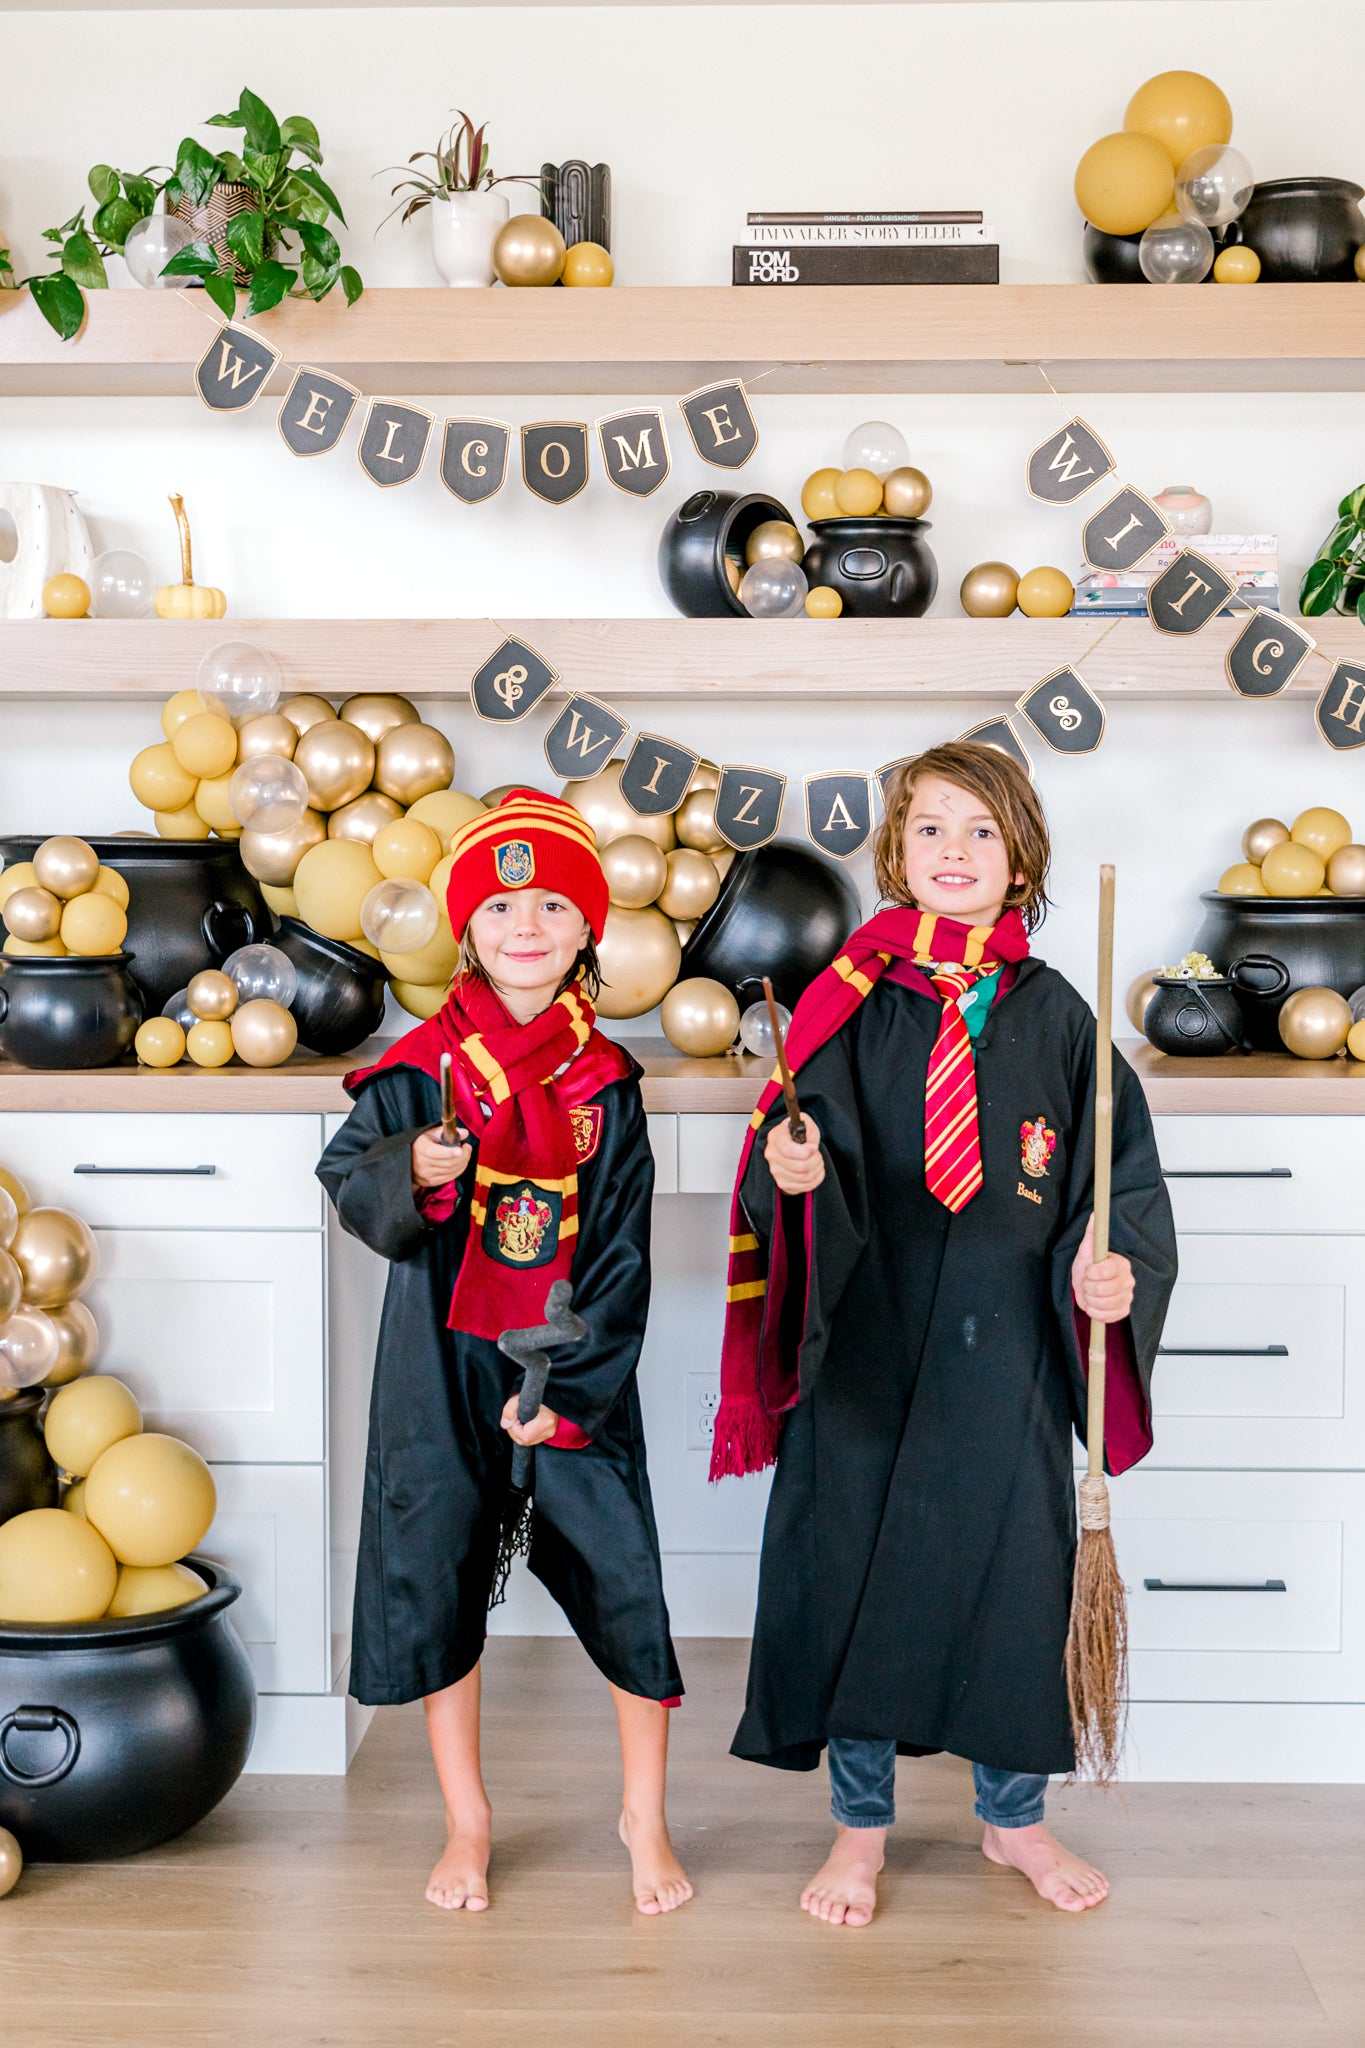 Boys dressed as Harry Potter characters at party